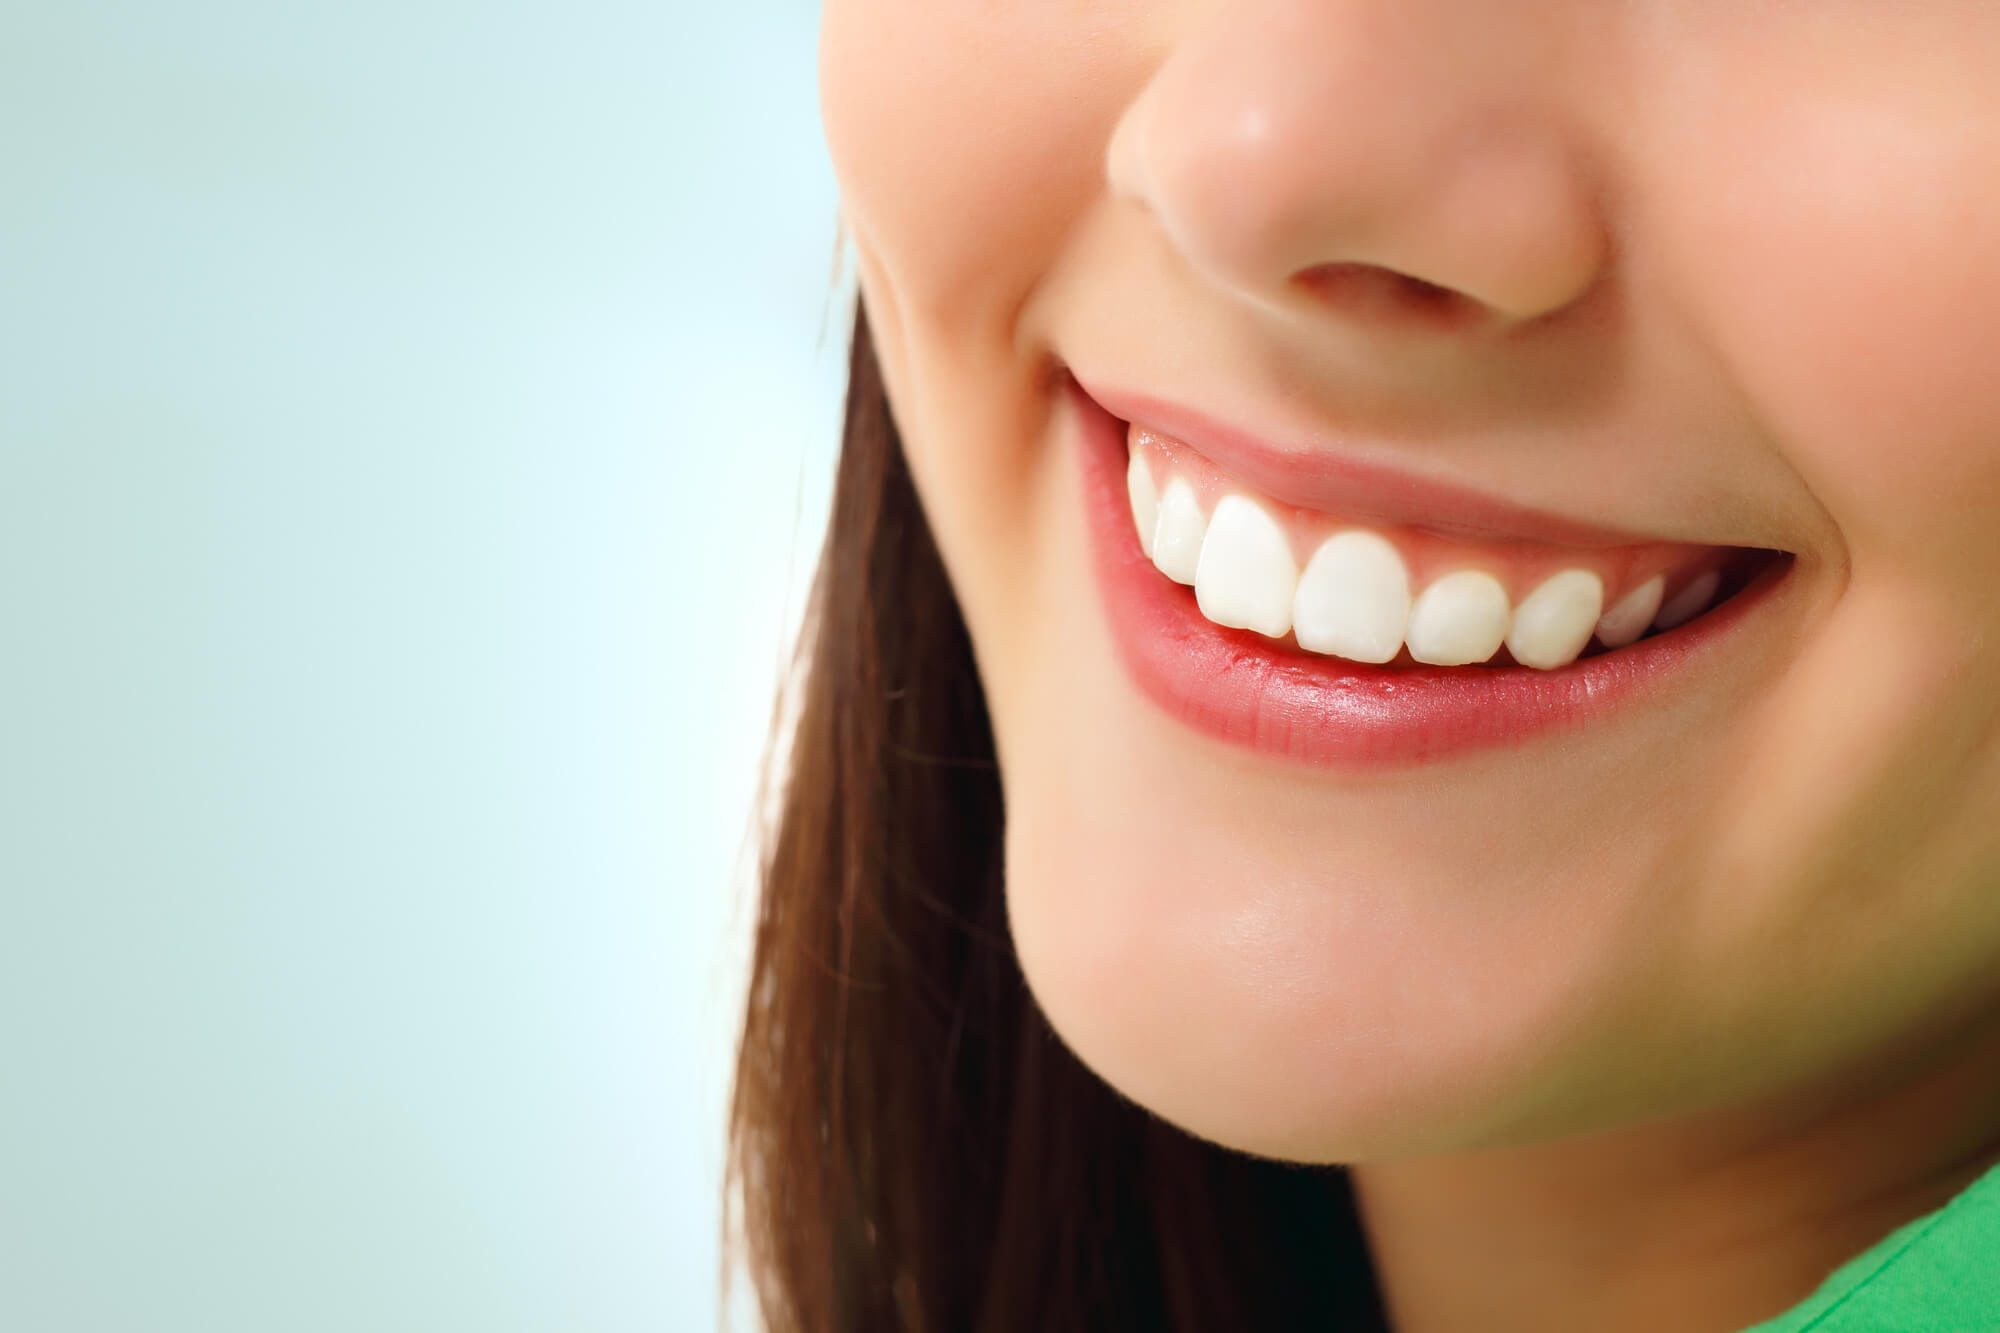 who offers the best oral surgery pembroke pines fl?